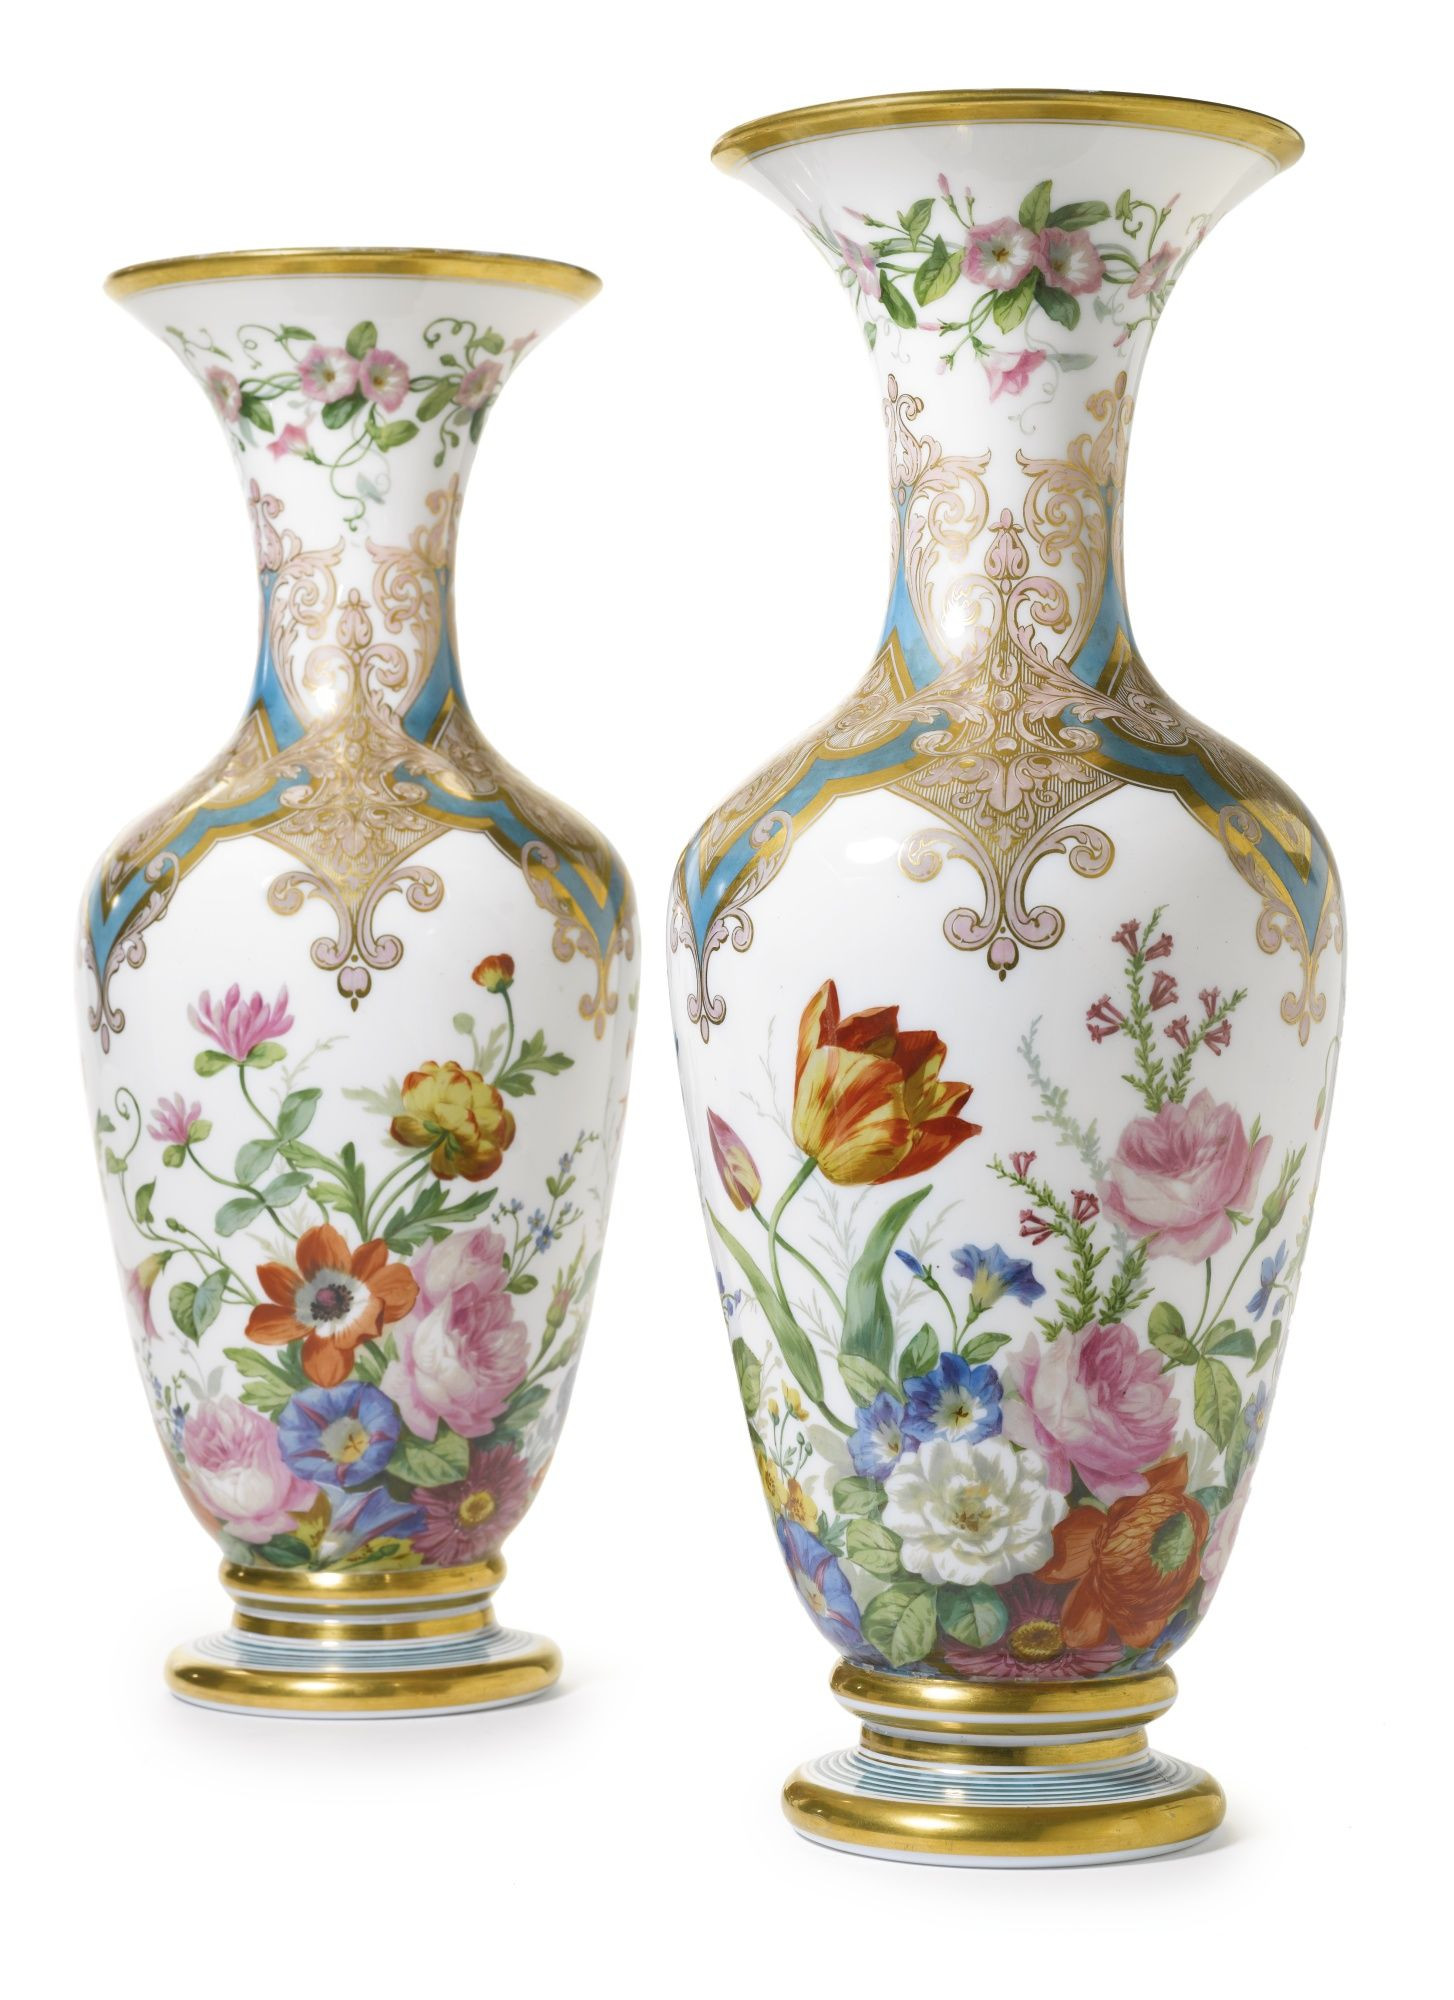 Tall Teal Glass Vase Of A Pair Of French White Opaline Glass Vasescirca 1860 Lot for A Pair Of French White Opaline Glass Vasescirca 1860 Lot sothebys